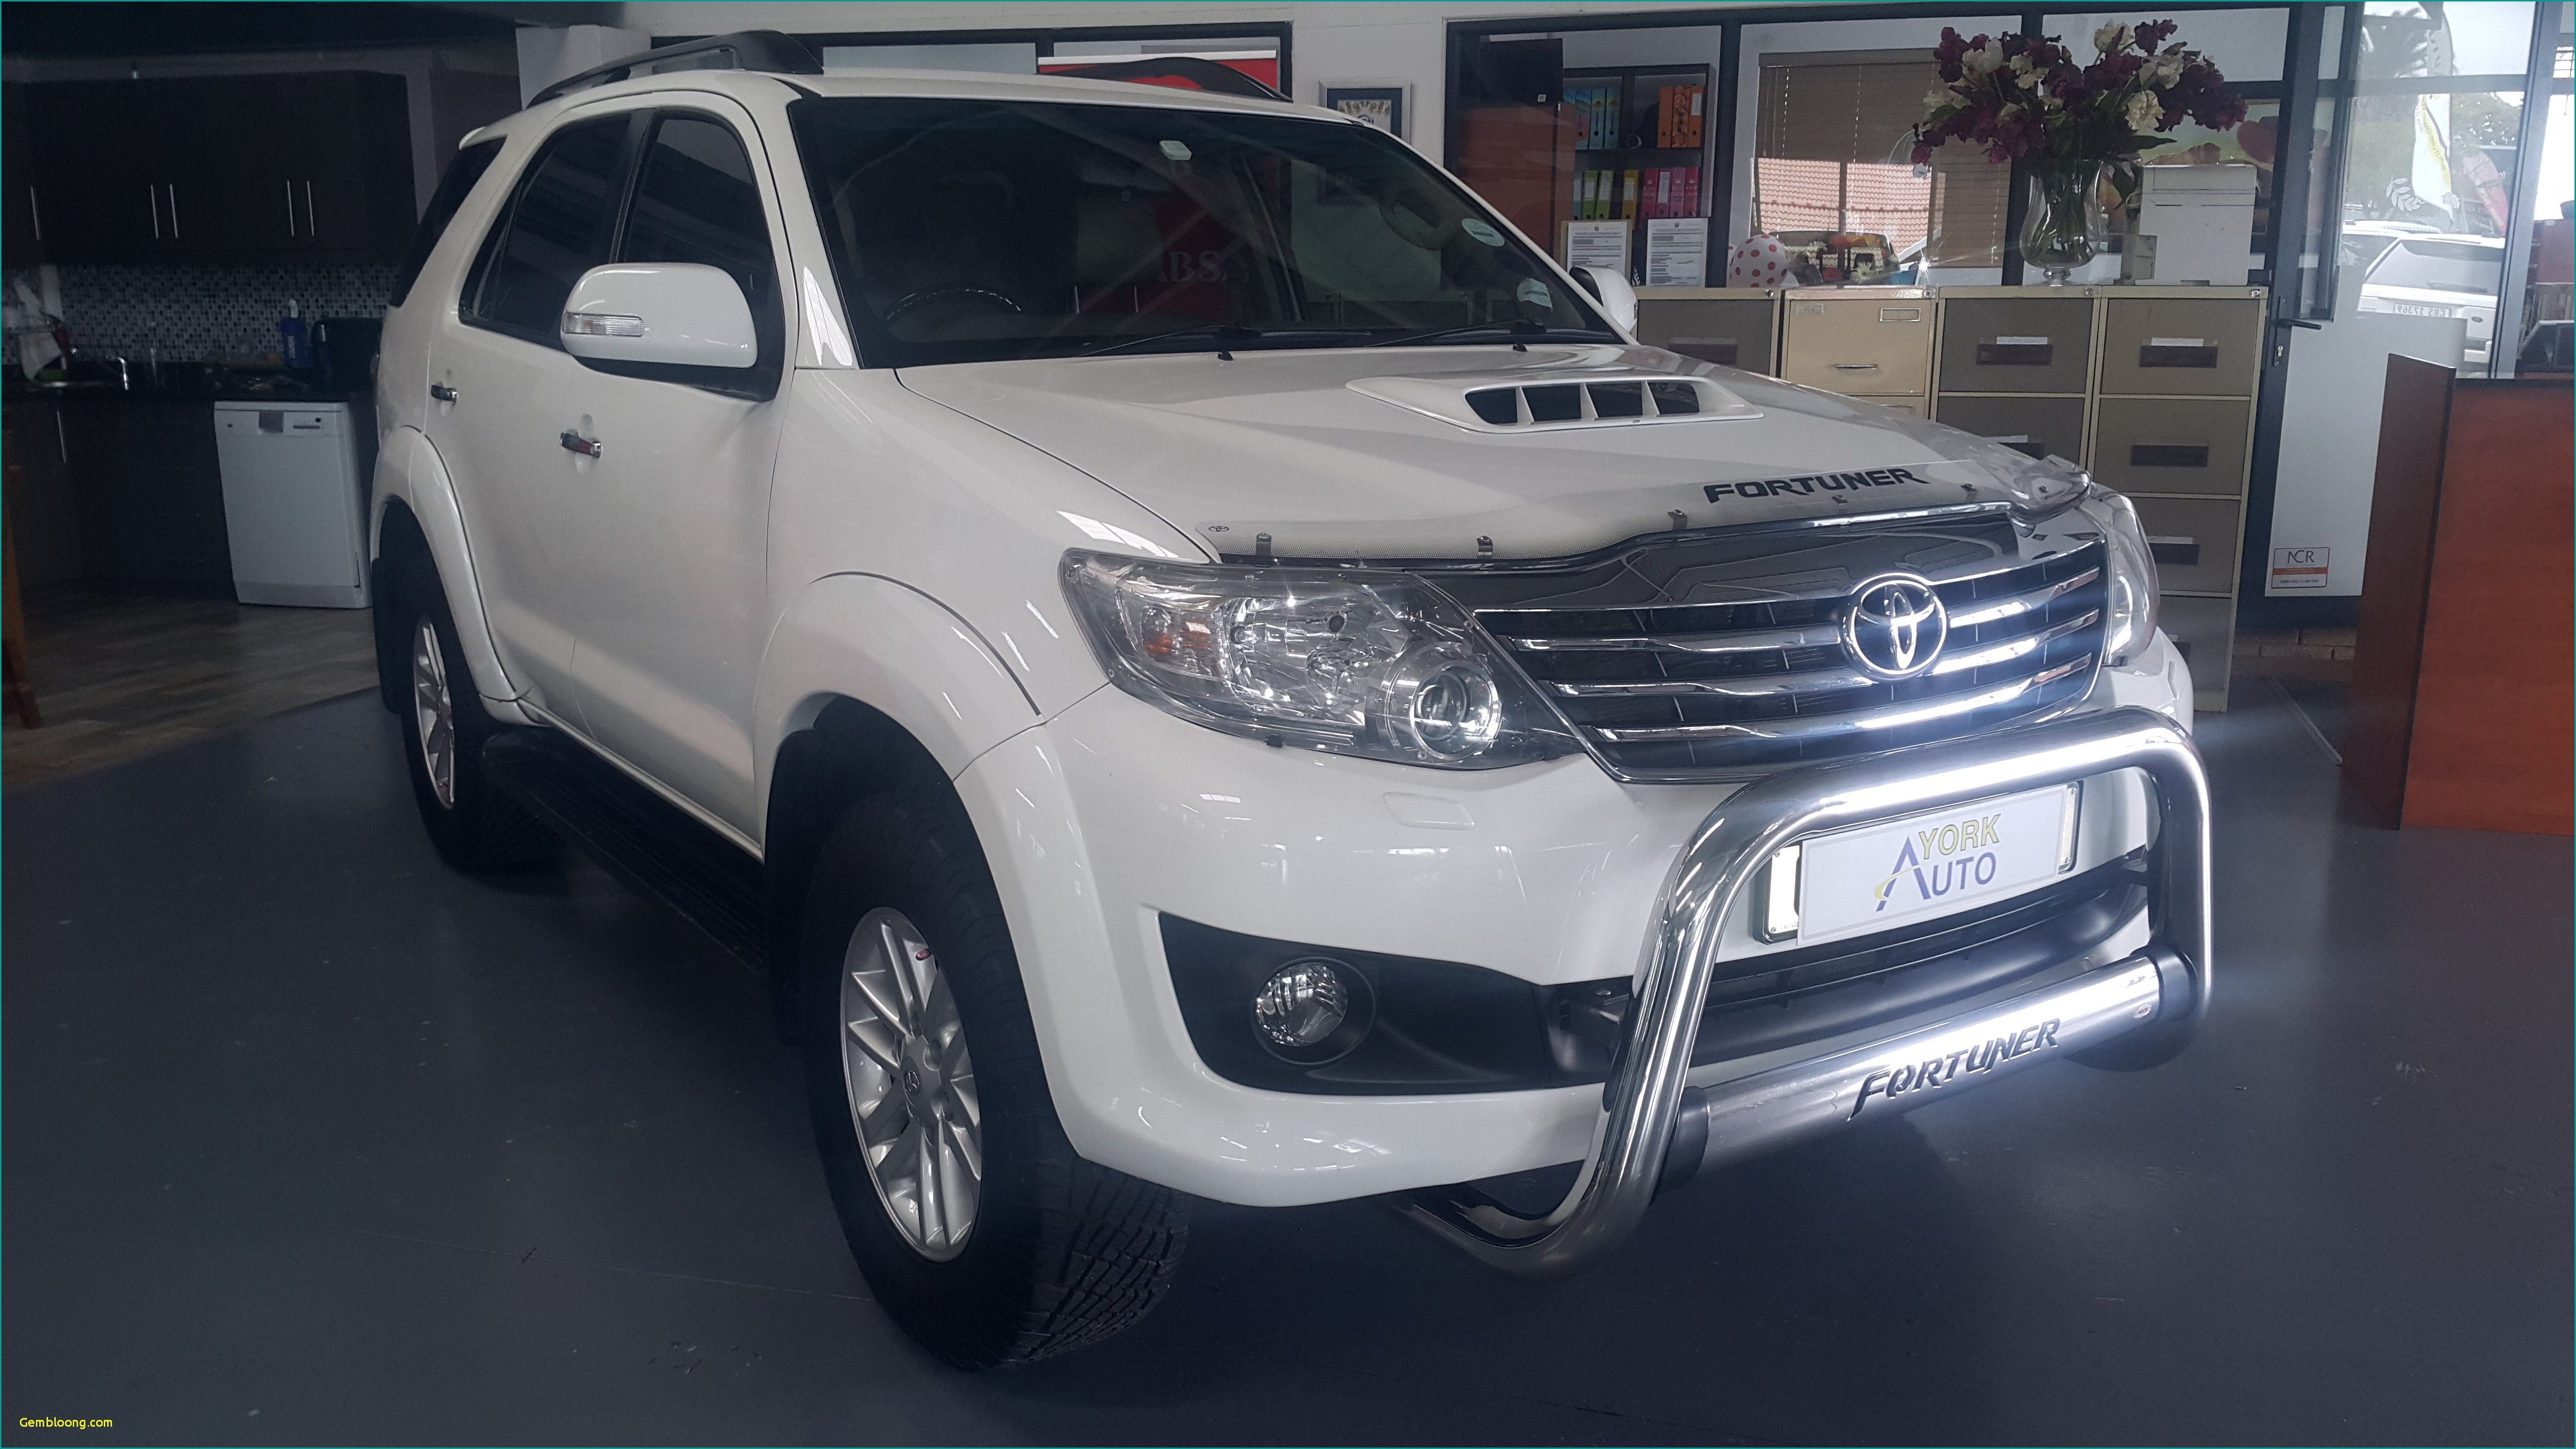 Modele 4 4 Luxe Toyota Fortuner 2018 Model Toyota 4 4 Suv Best